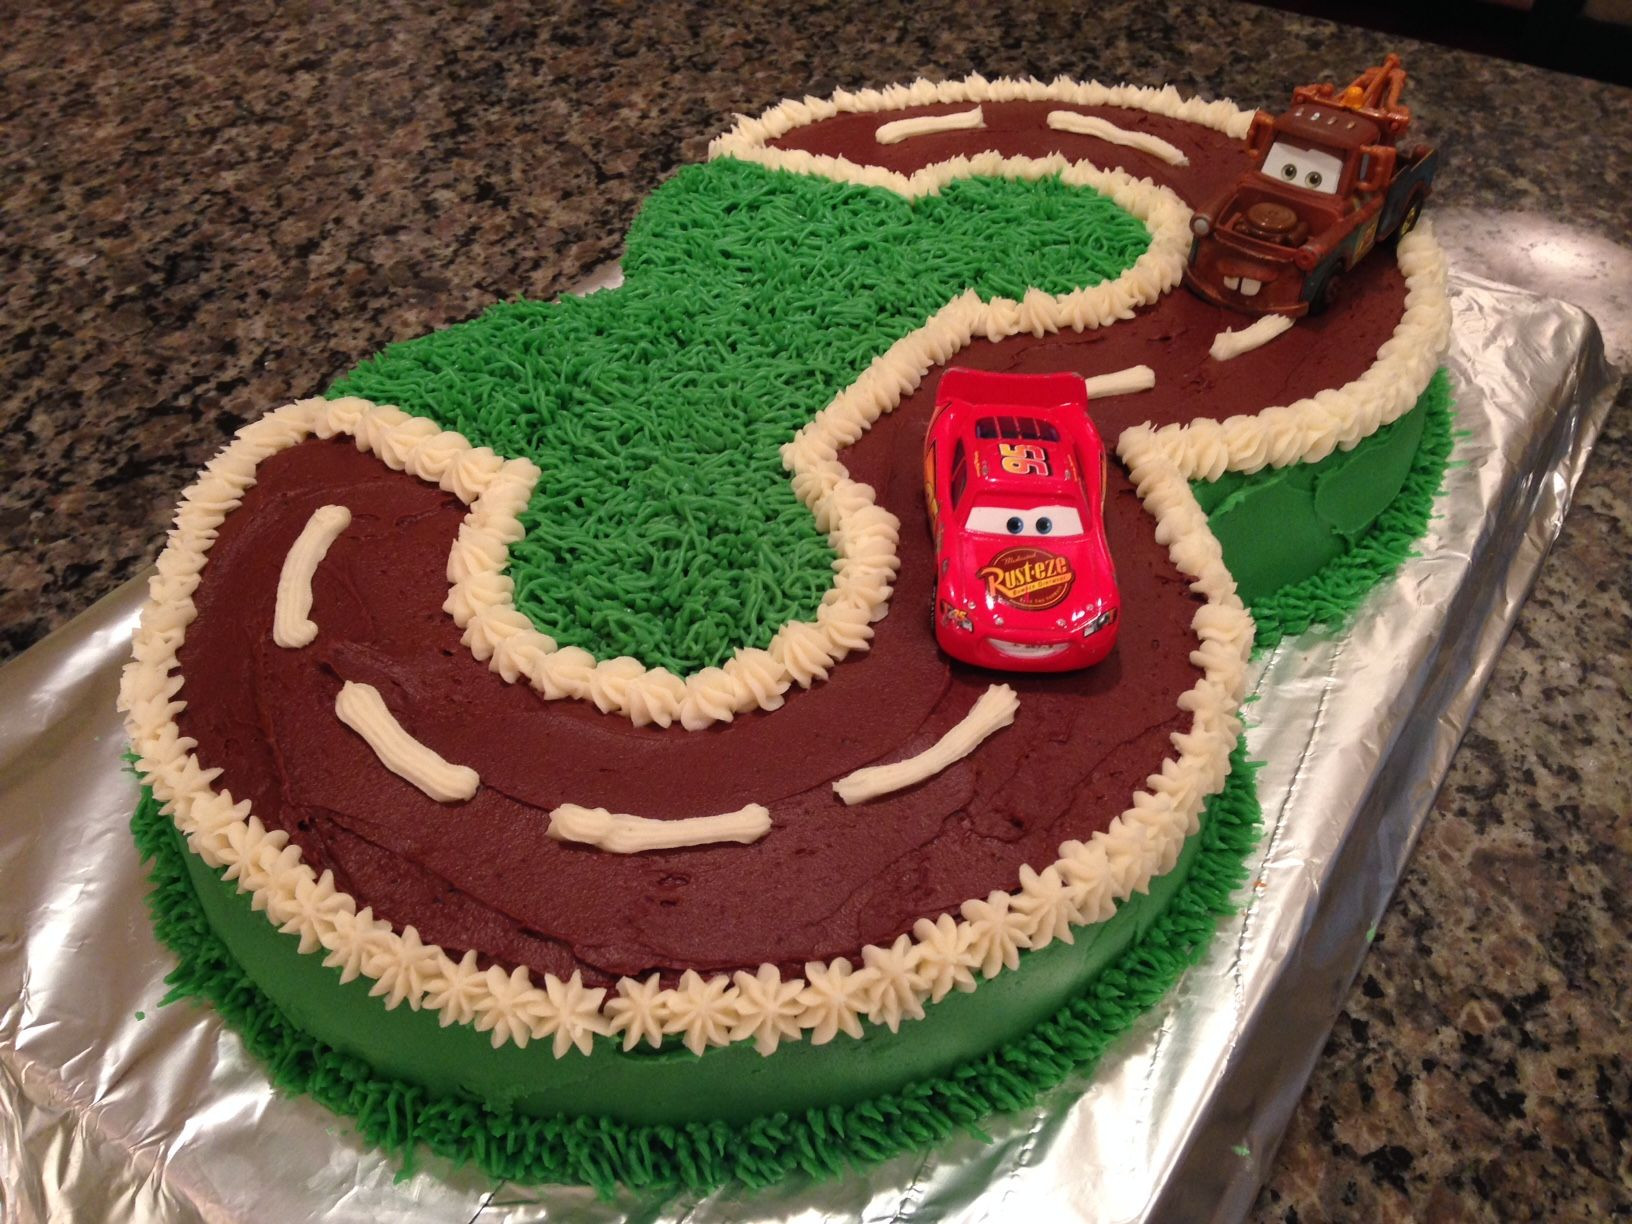 Best ideas about Birthday Cake For 3 Year Old Boy . Save or Pin I made this Cars birthday cake for my 3 year old nephew Now.